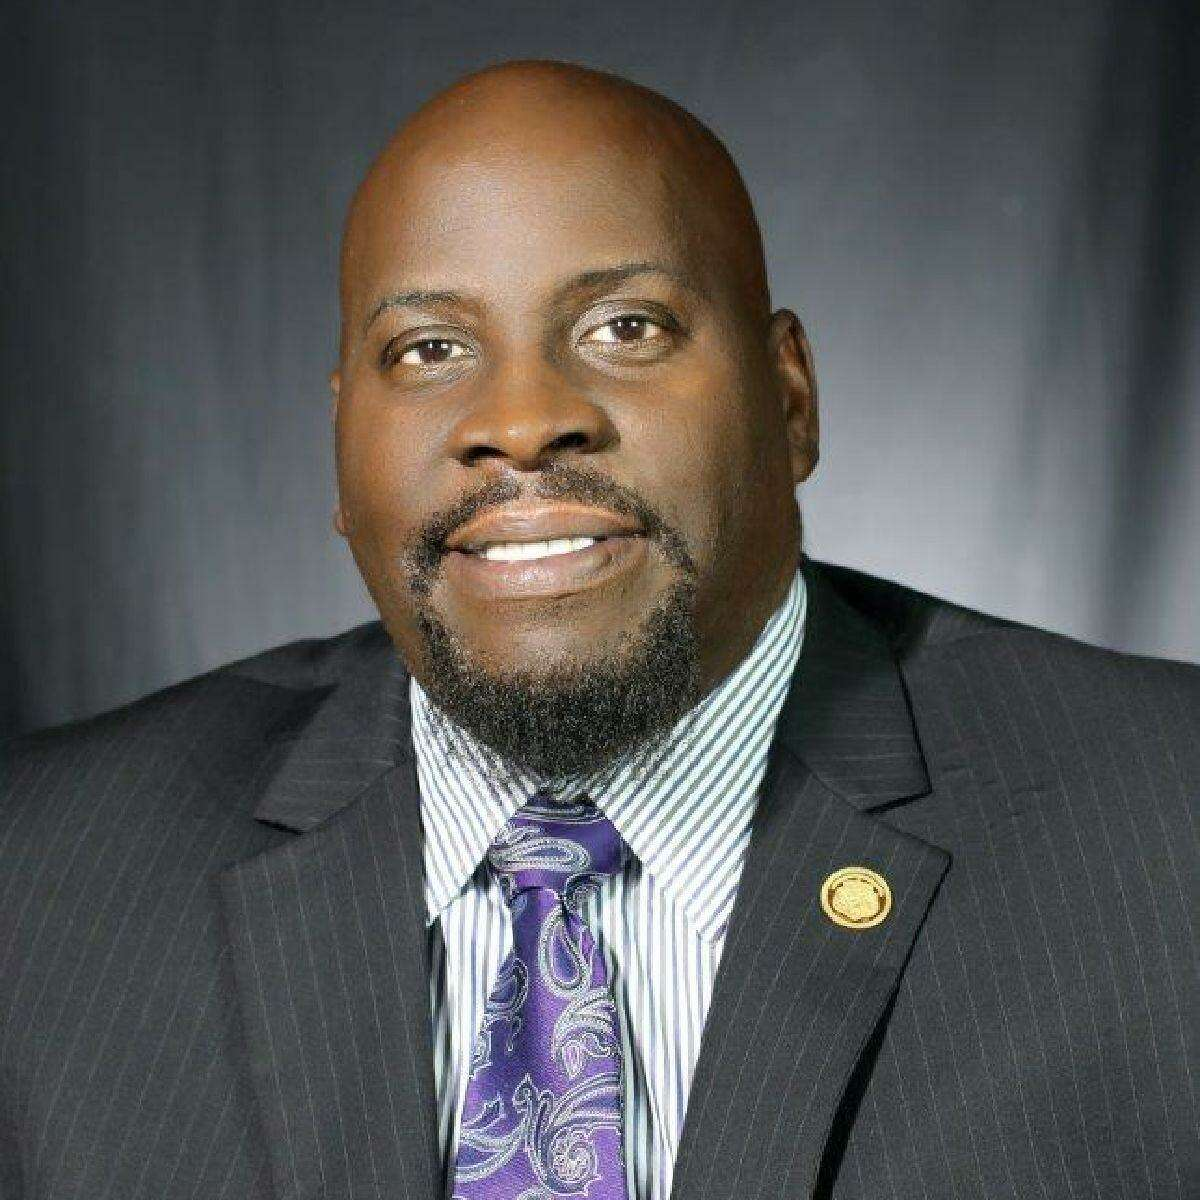 Dwayne Smith is the new CEO of Housatonic Community College.